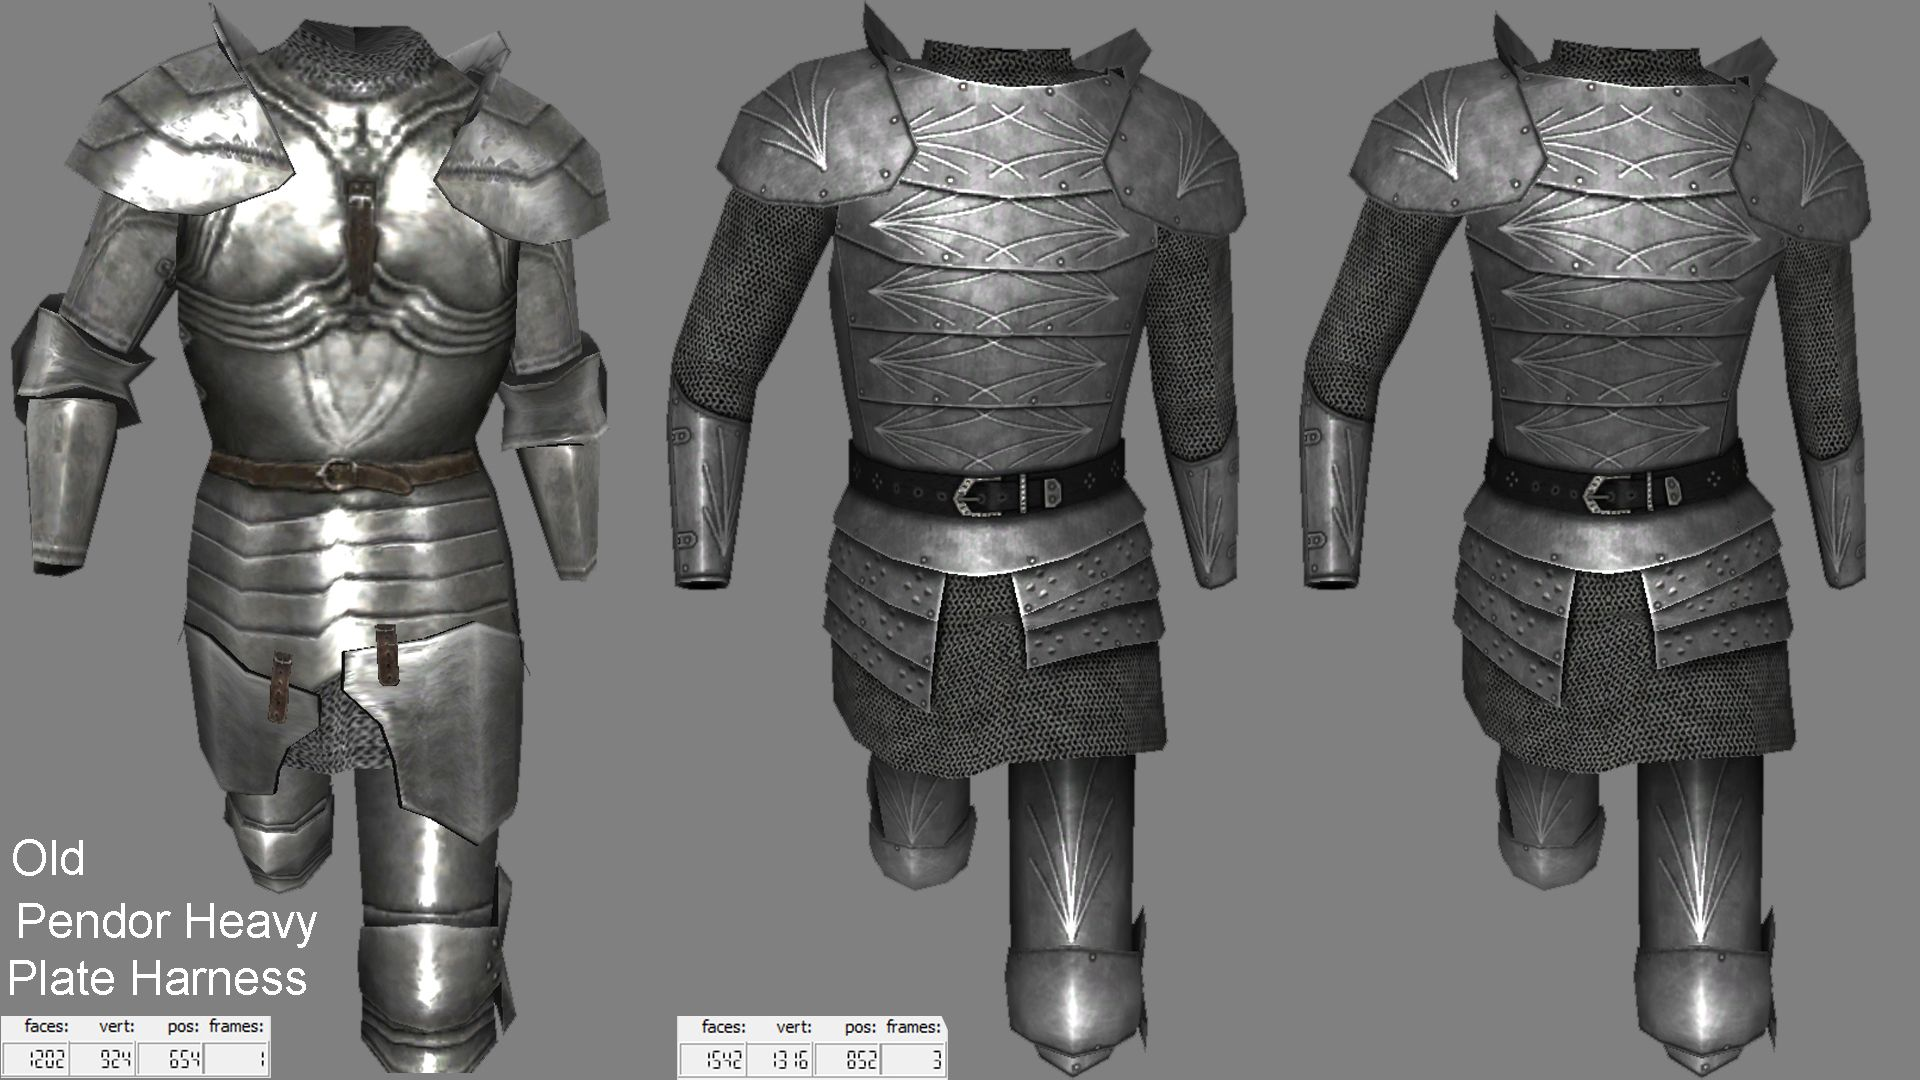 New Old Pendor Plate Armor Image With Images Armor